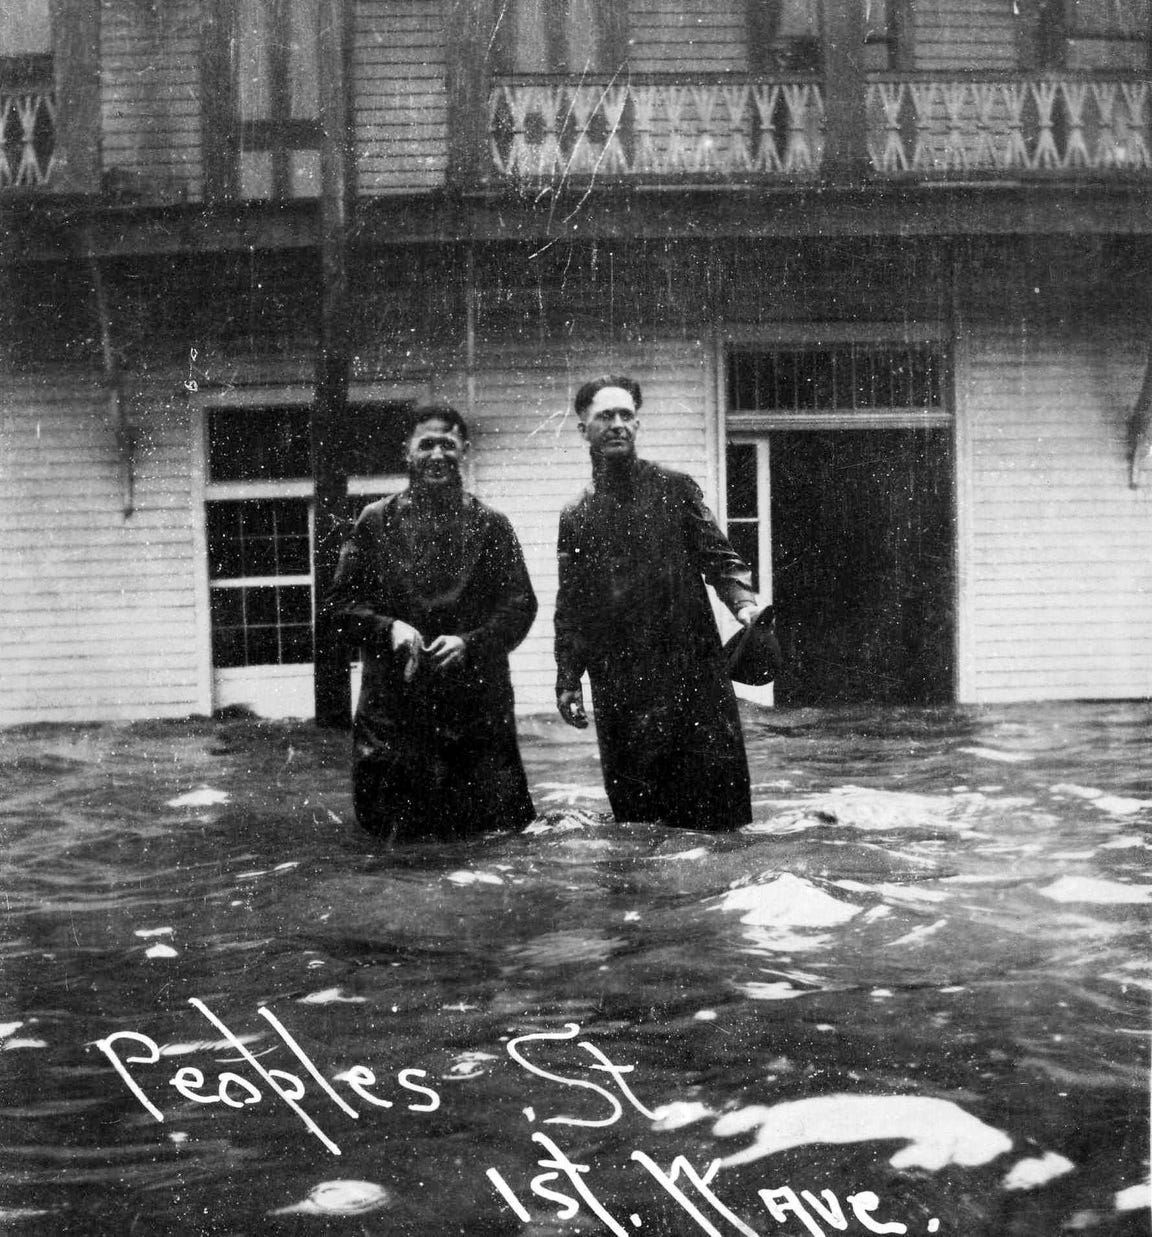 """Two men wade onto Peoples Street as water begins to push into the streets as the 1919 hurricane approached. The storm surge reached 12 feet in downtown Corpus Christi, with high water marks up to 16 feet.Photo from """"1919: The Storm - A Narrative and Photographic History"""" by Murphy Givens and Jim Moloney and provided courtesy of the authors."""